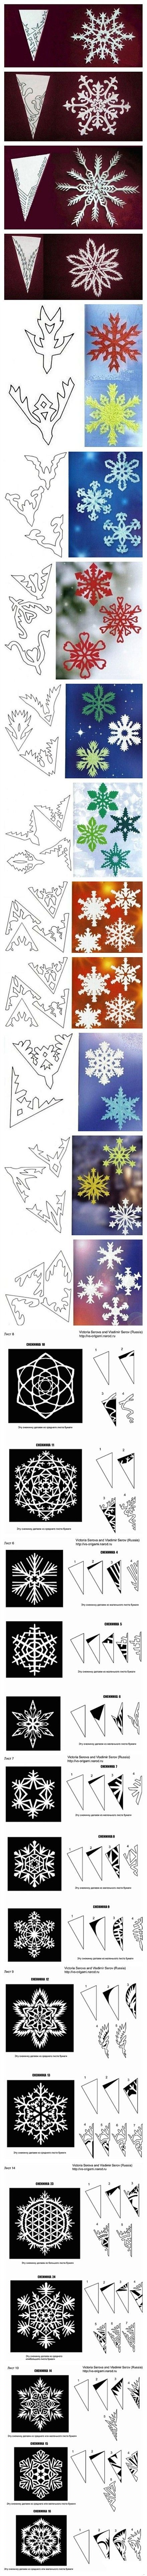 Snowflake Templates.  This is how I'll be spending my Christmas Eve.